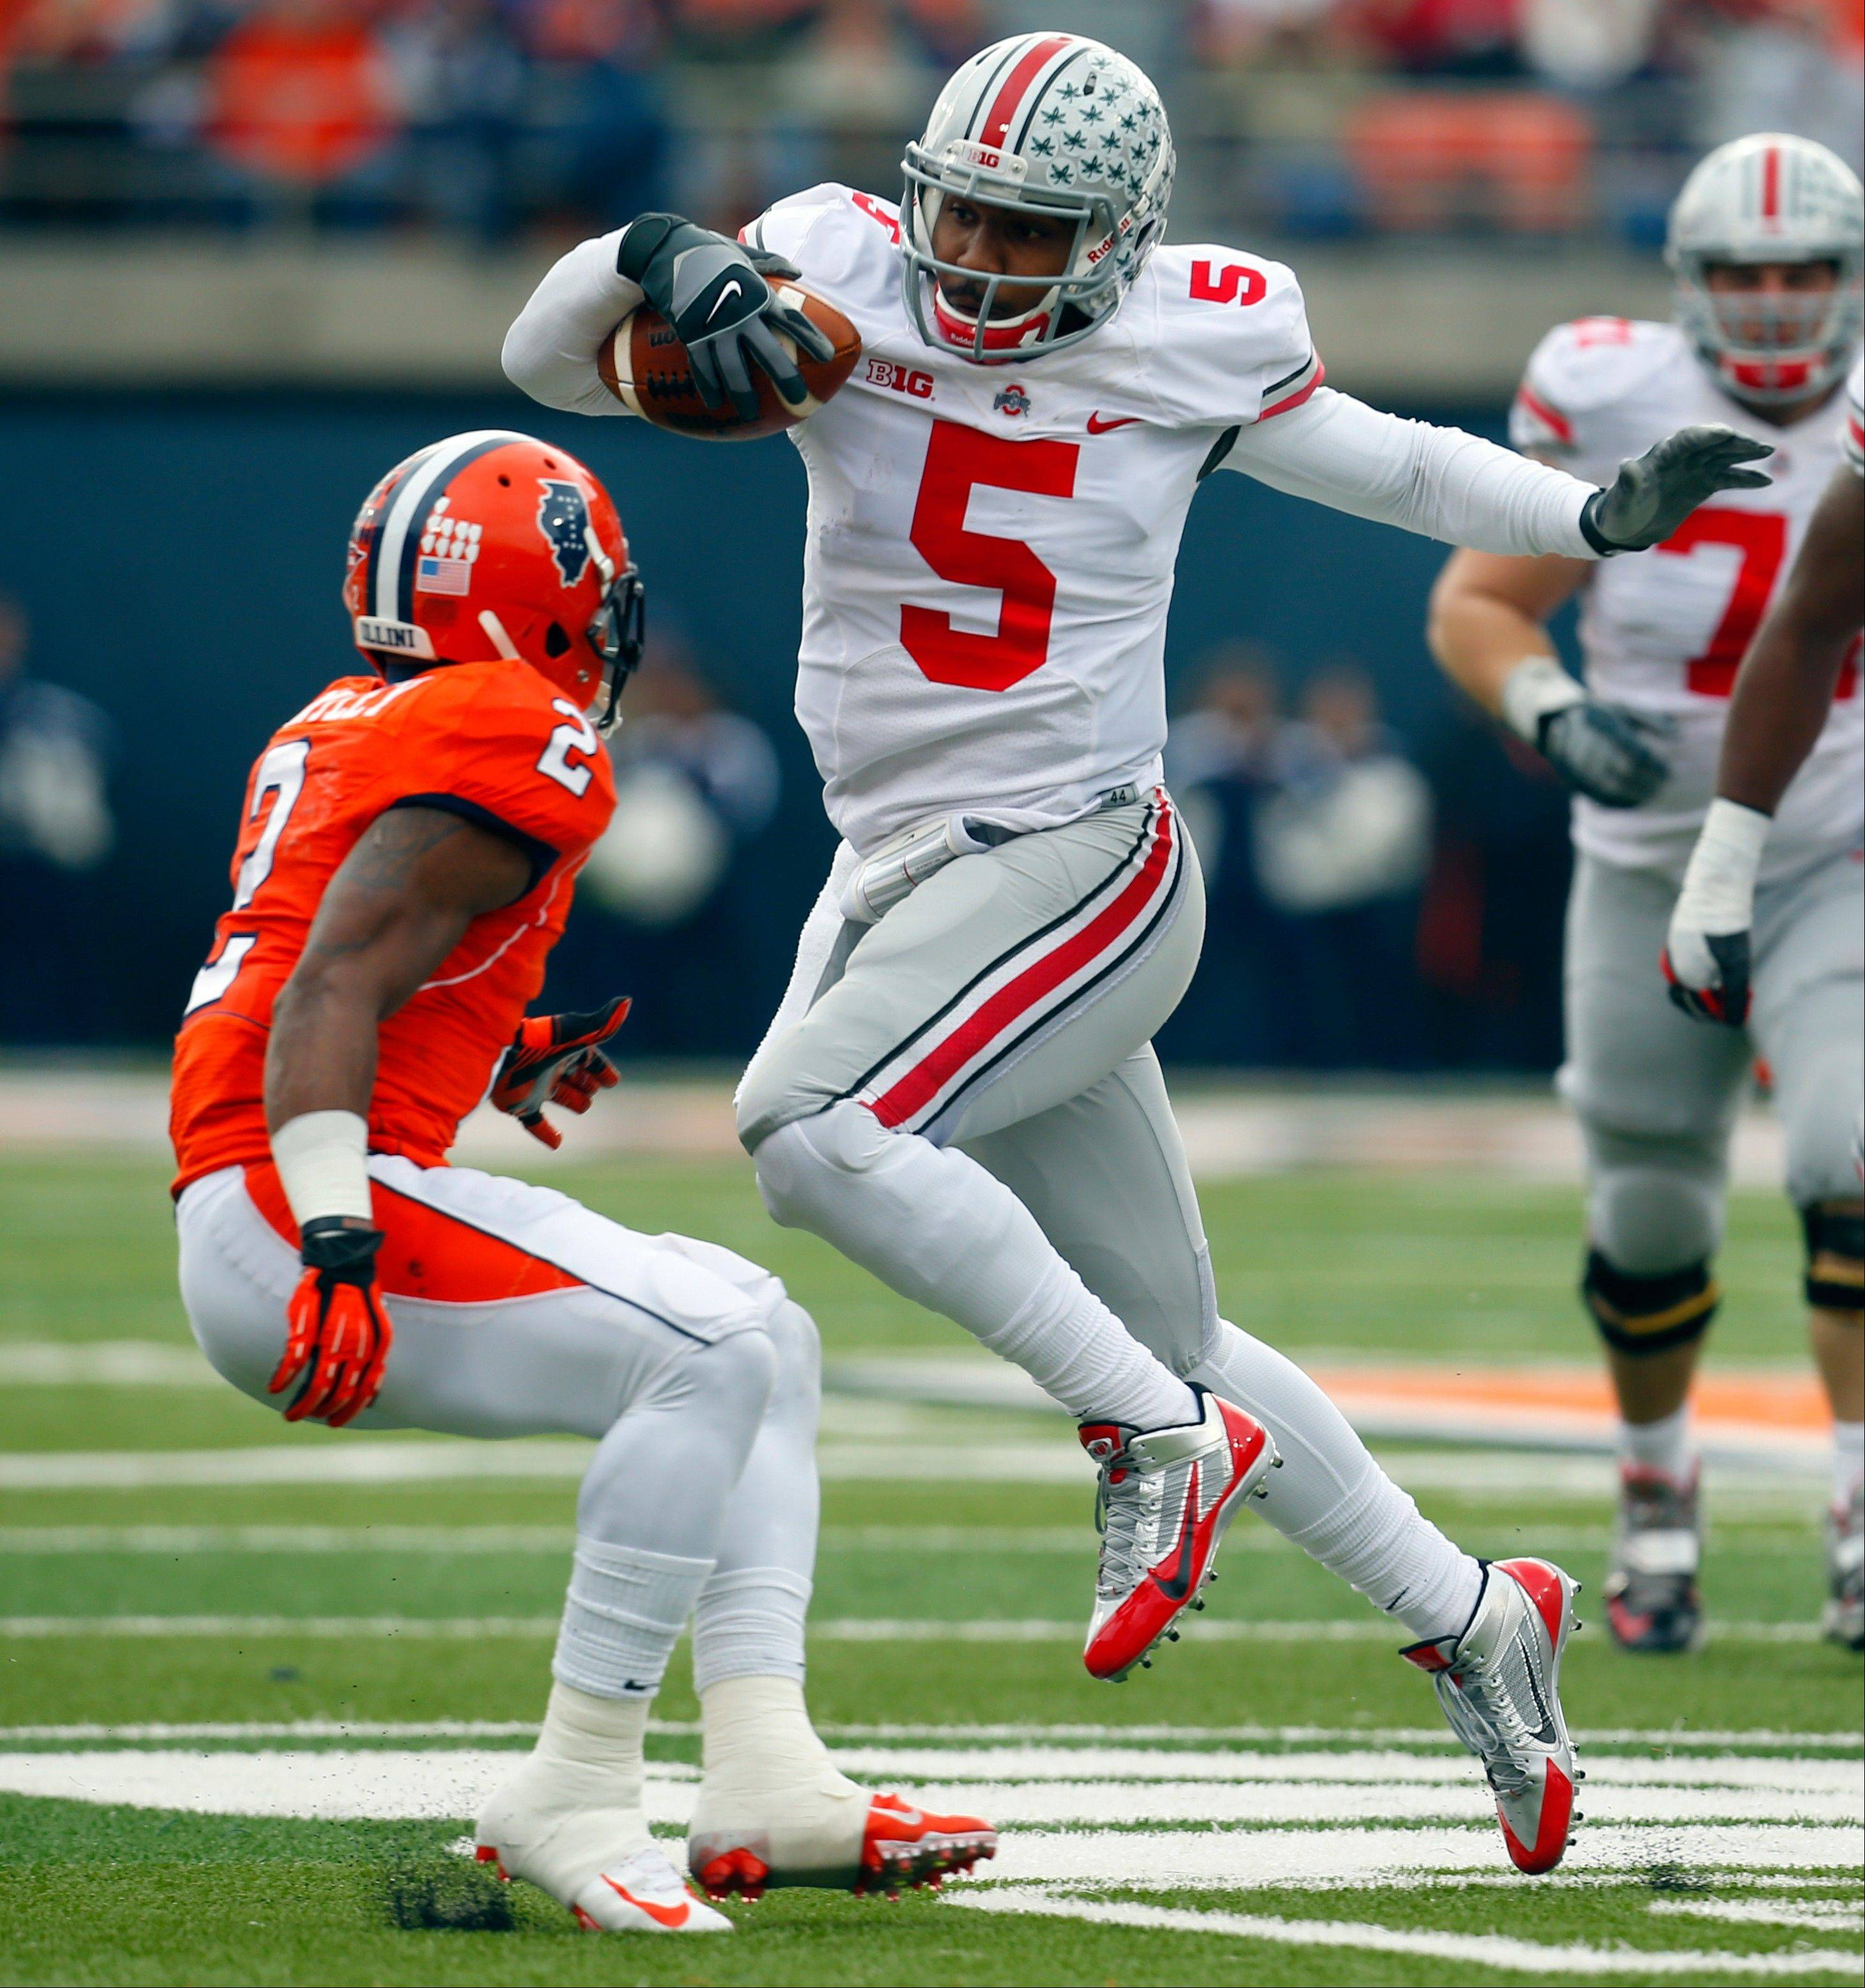 Buckeyes will take on Hoosiers and history Saturday